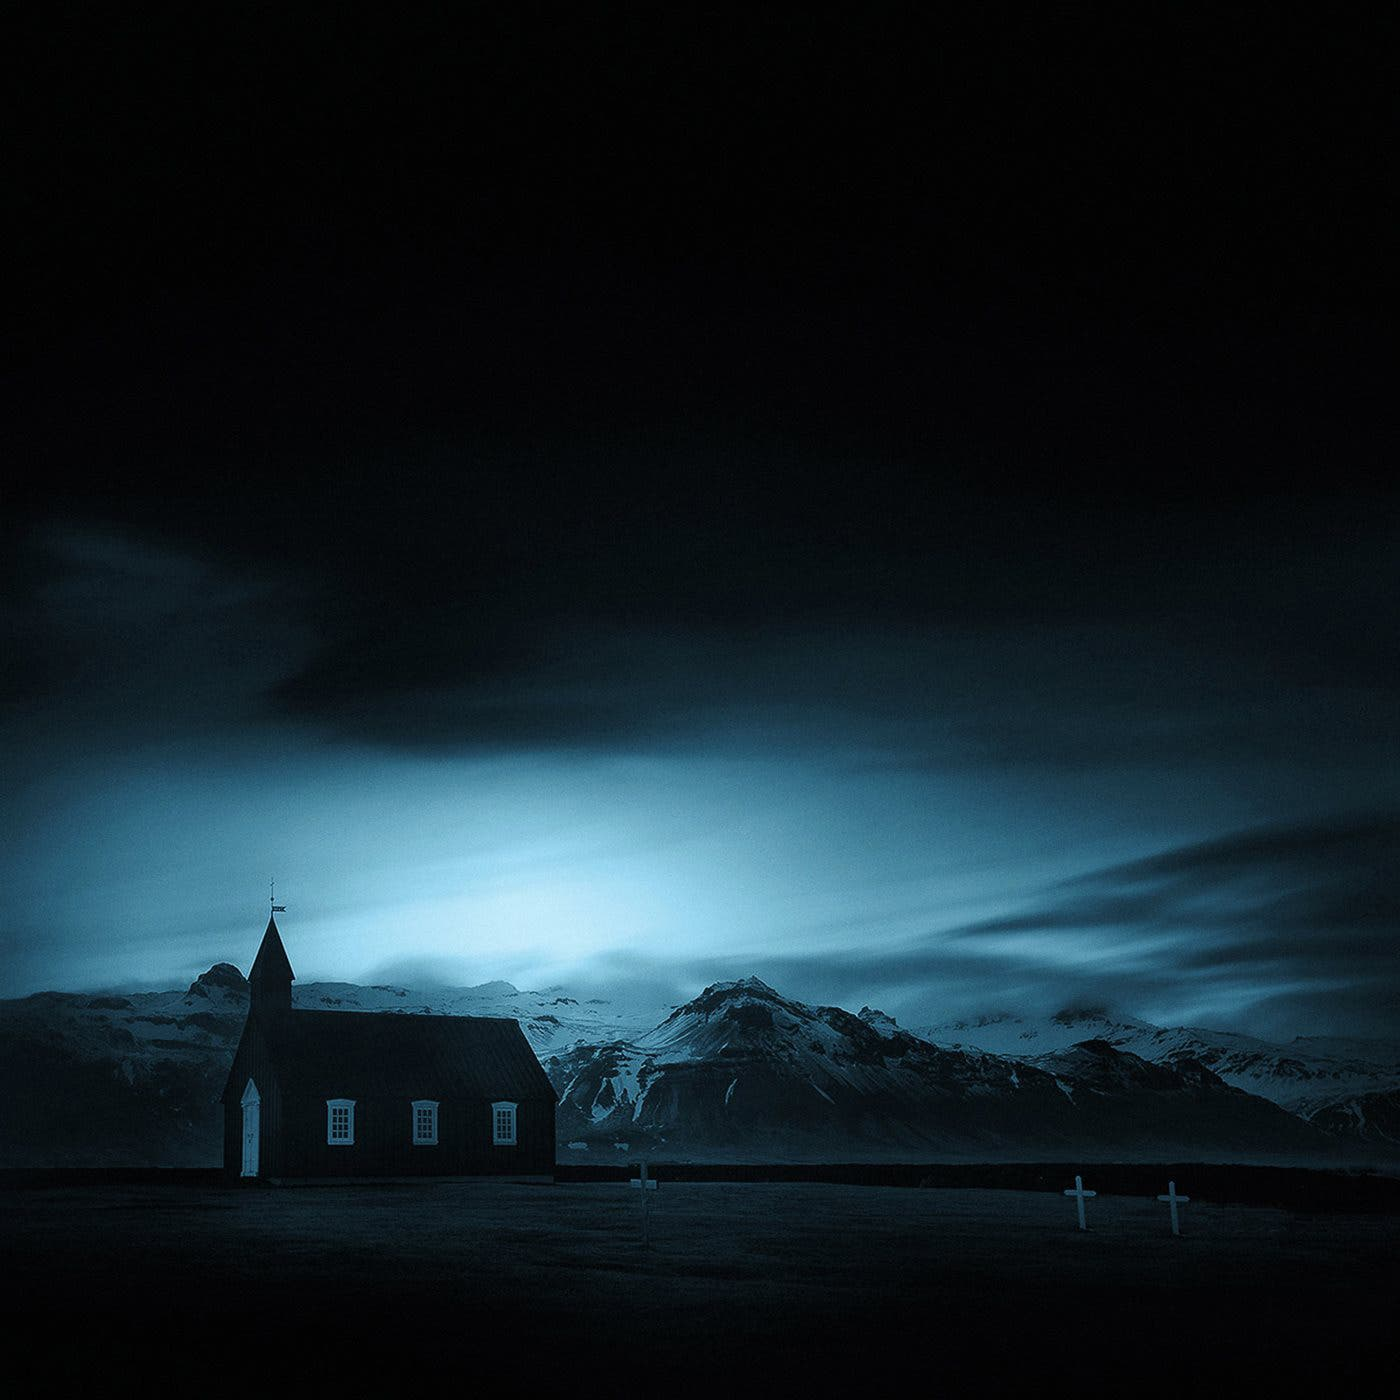 Andy Lee Used Infrared Photography for this Surreal Landscape Series